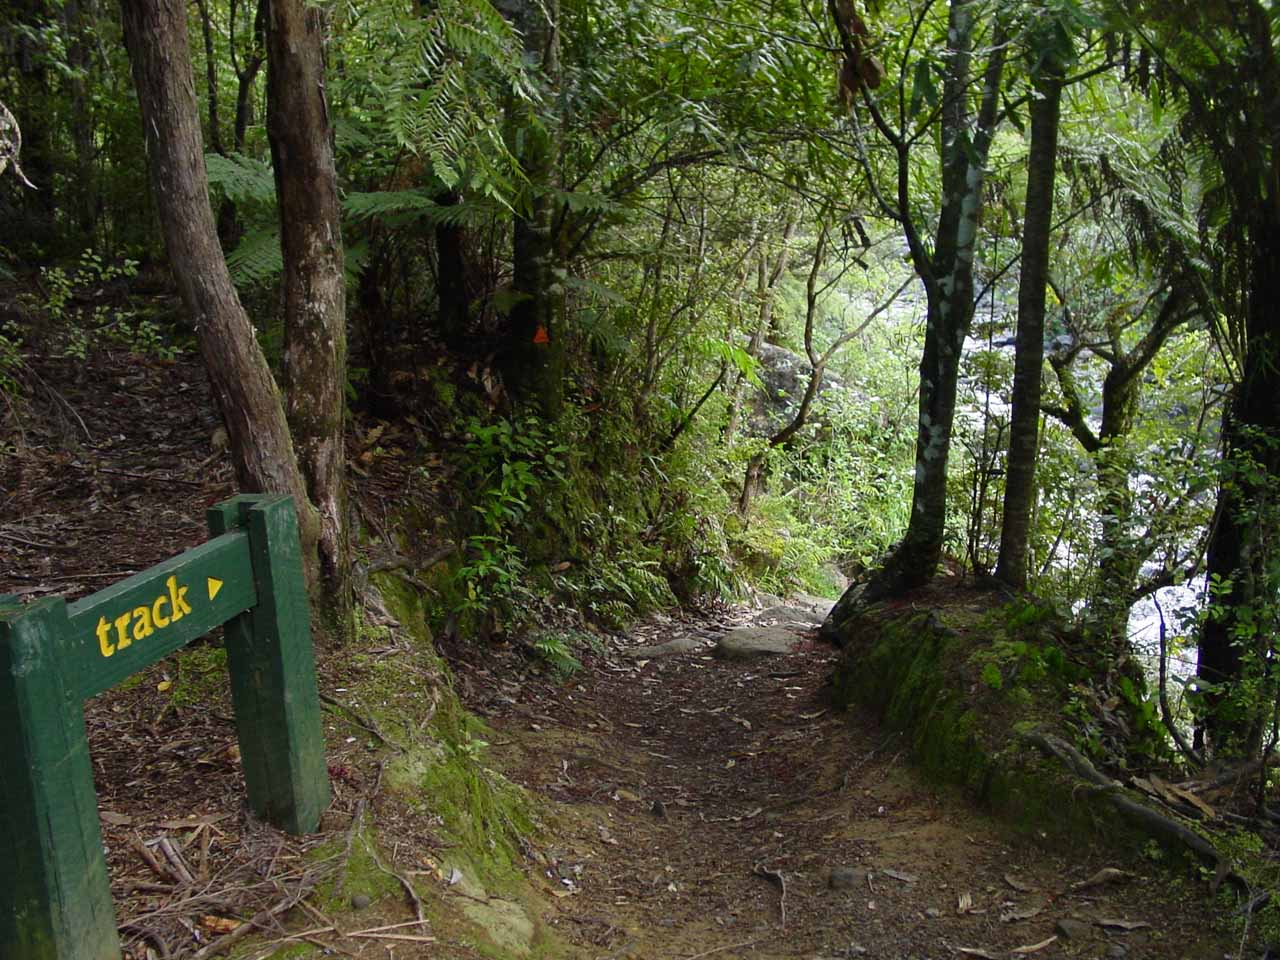 Following the signs pointing the way back to the start of the Wentworth Falls Track